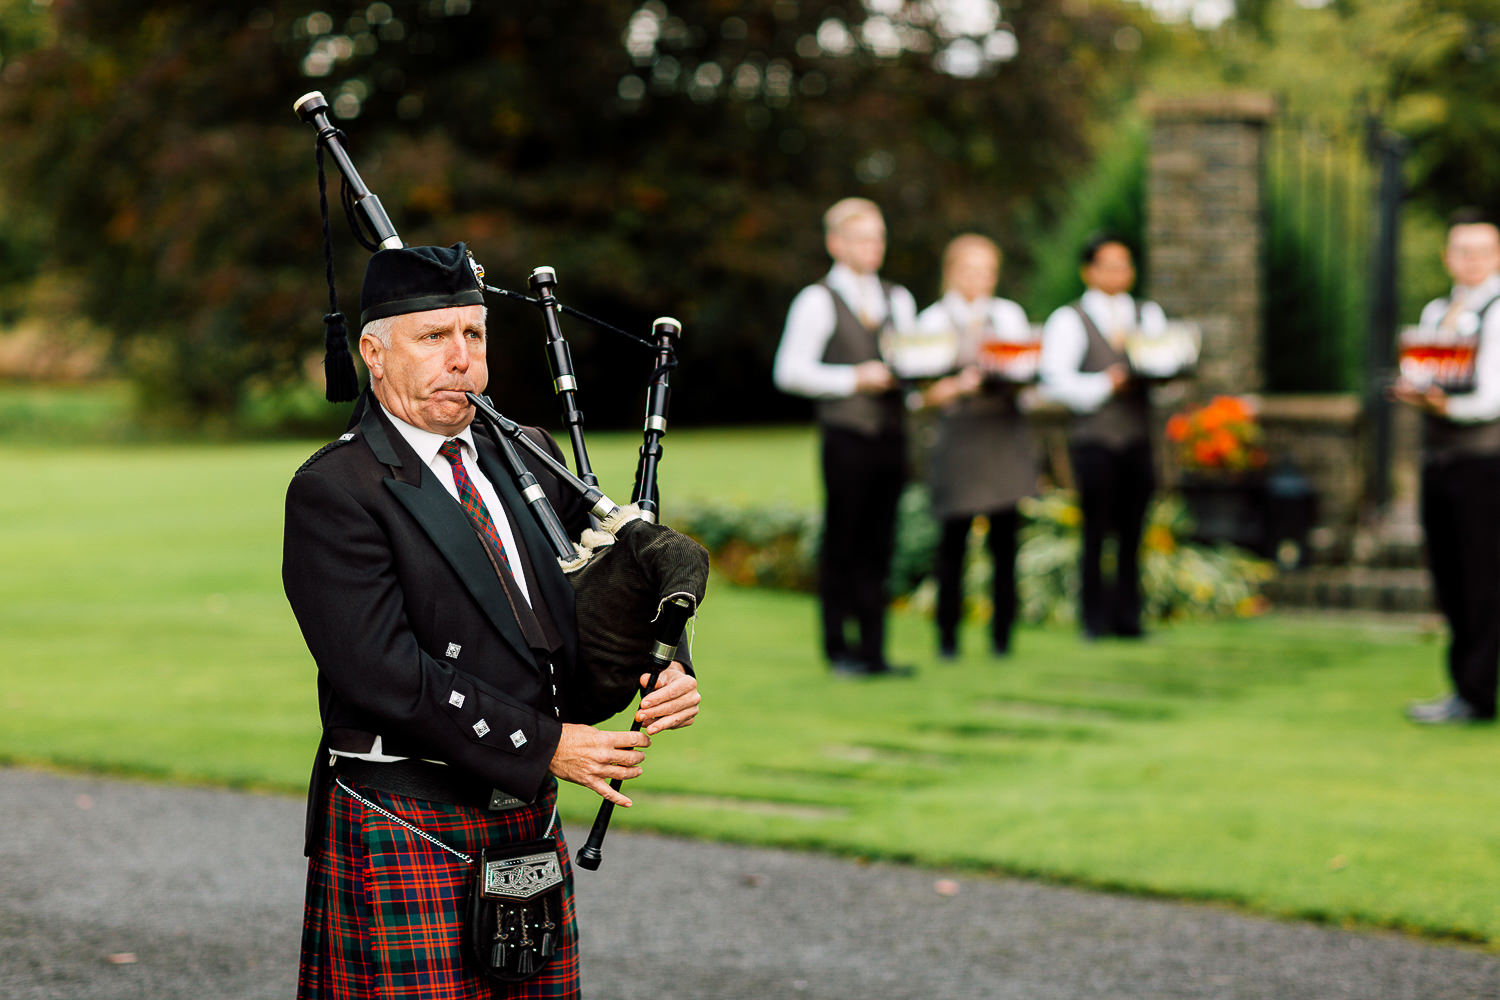 pipebag ireland destination wedding